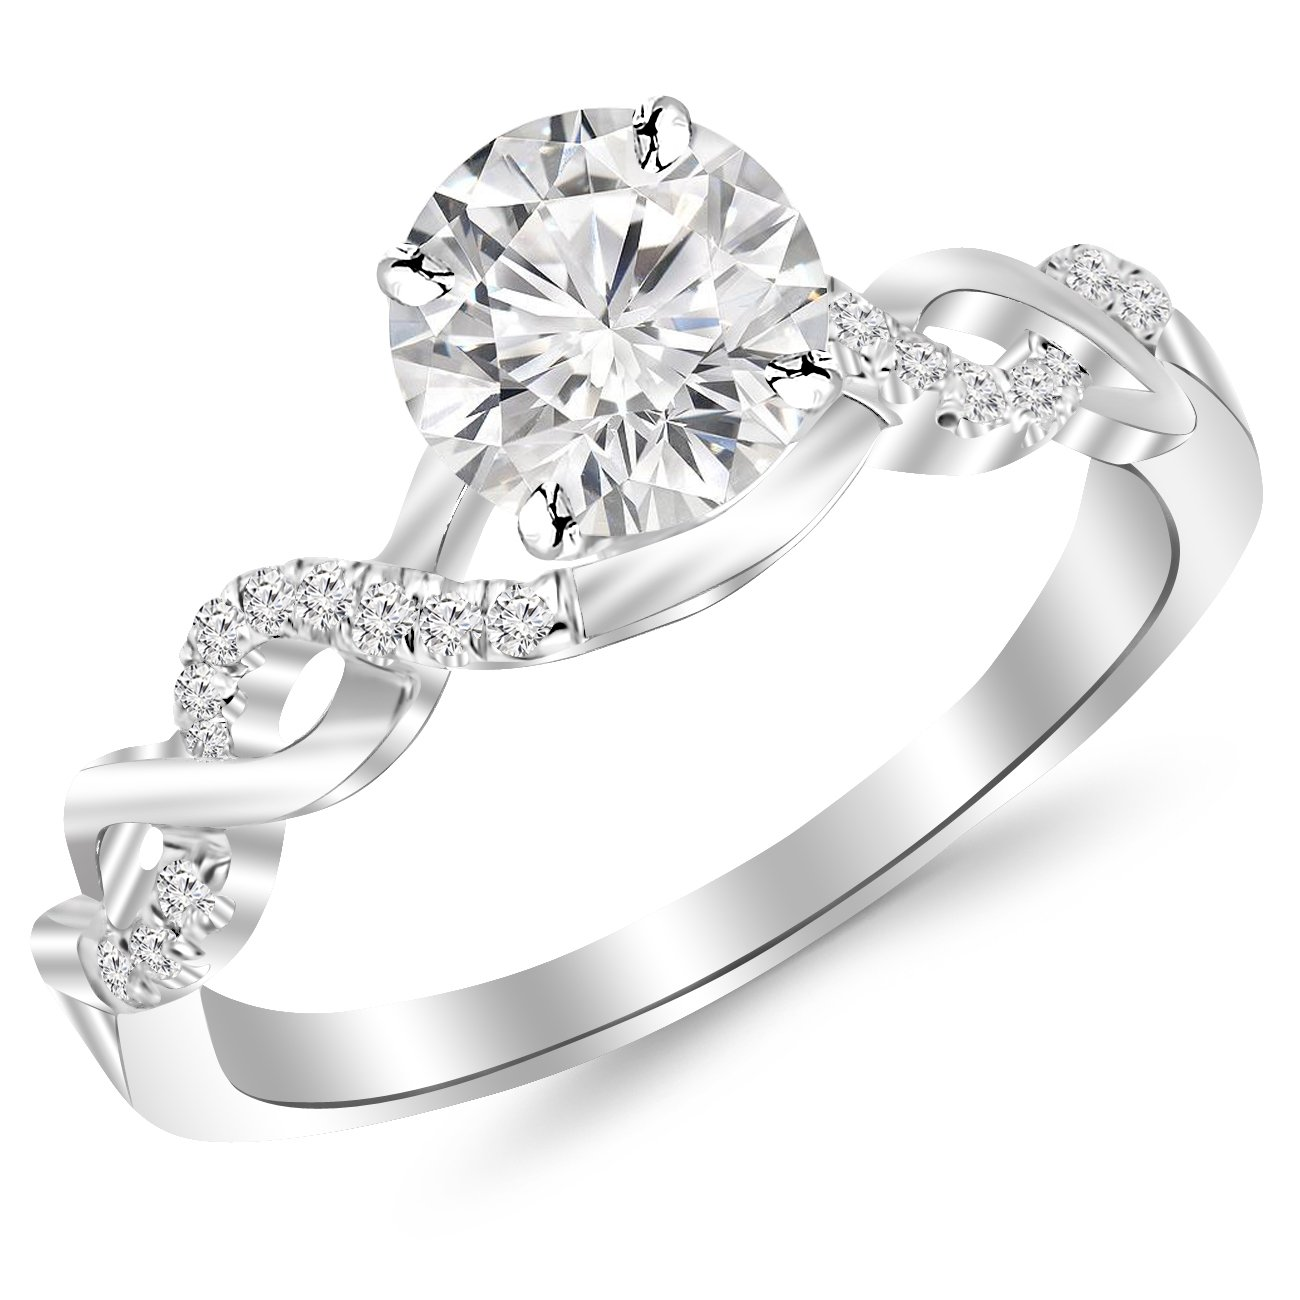 expand w fancy zest in shank corporation ring by diamond dancing r view click to rings split